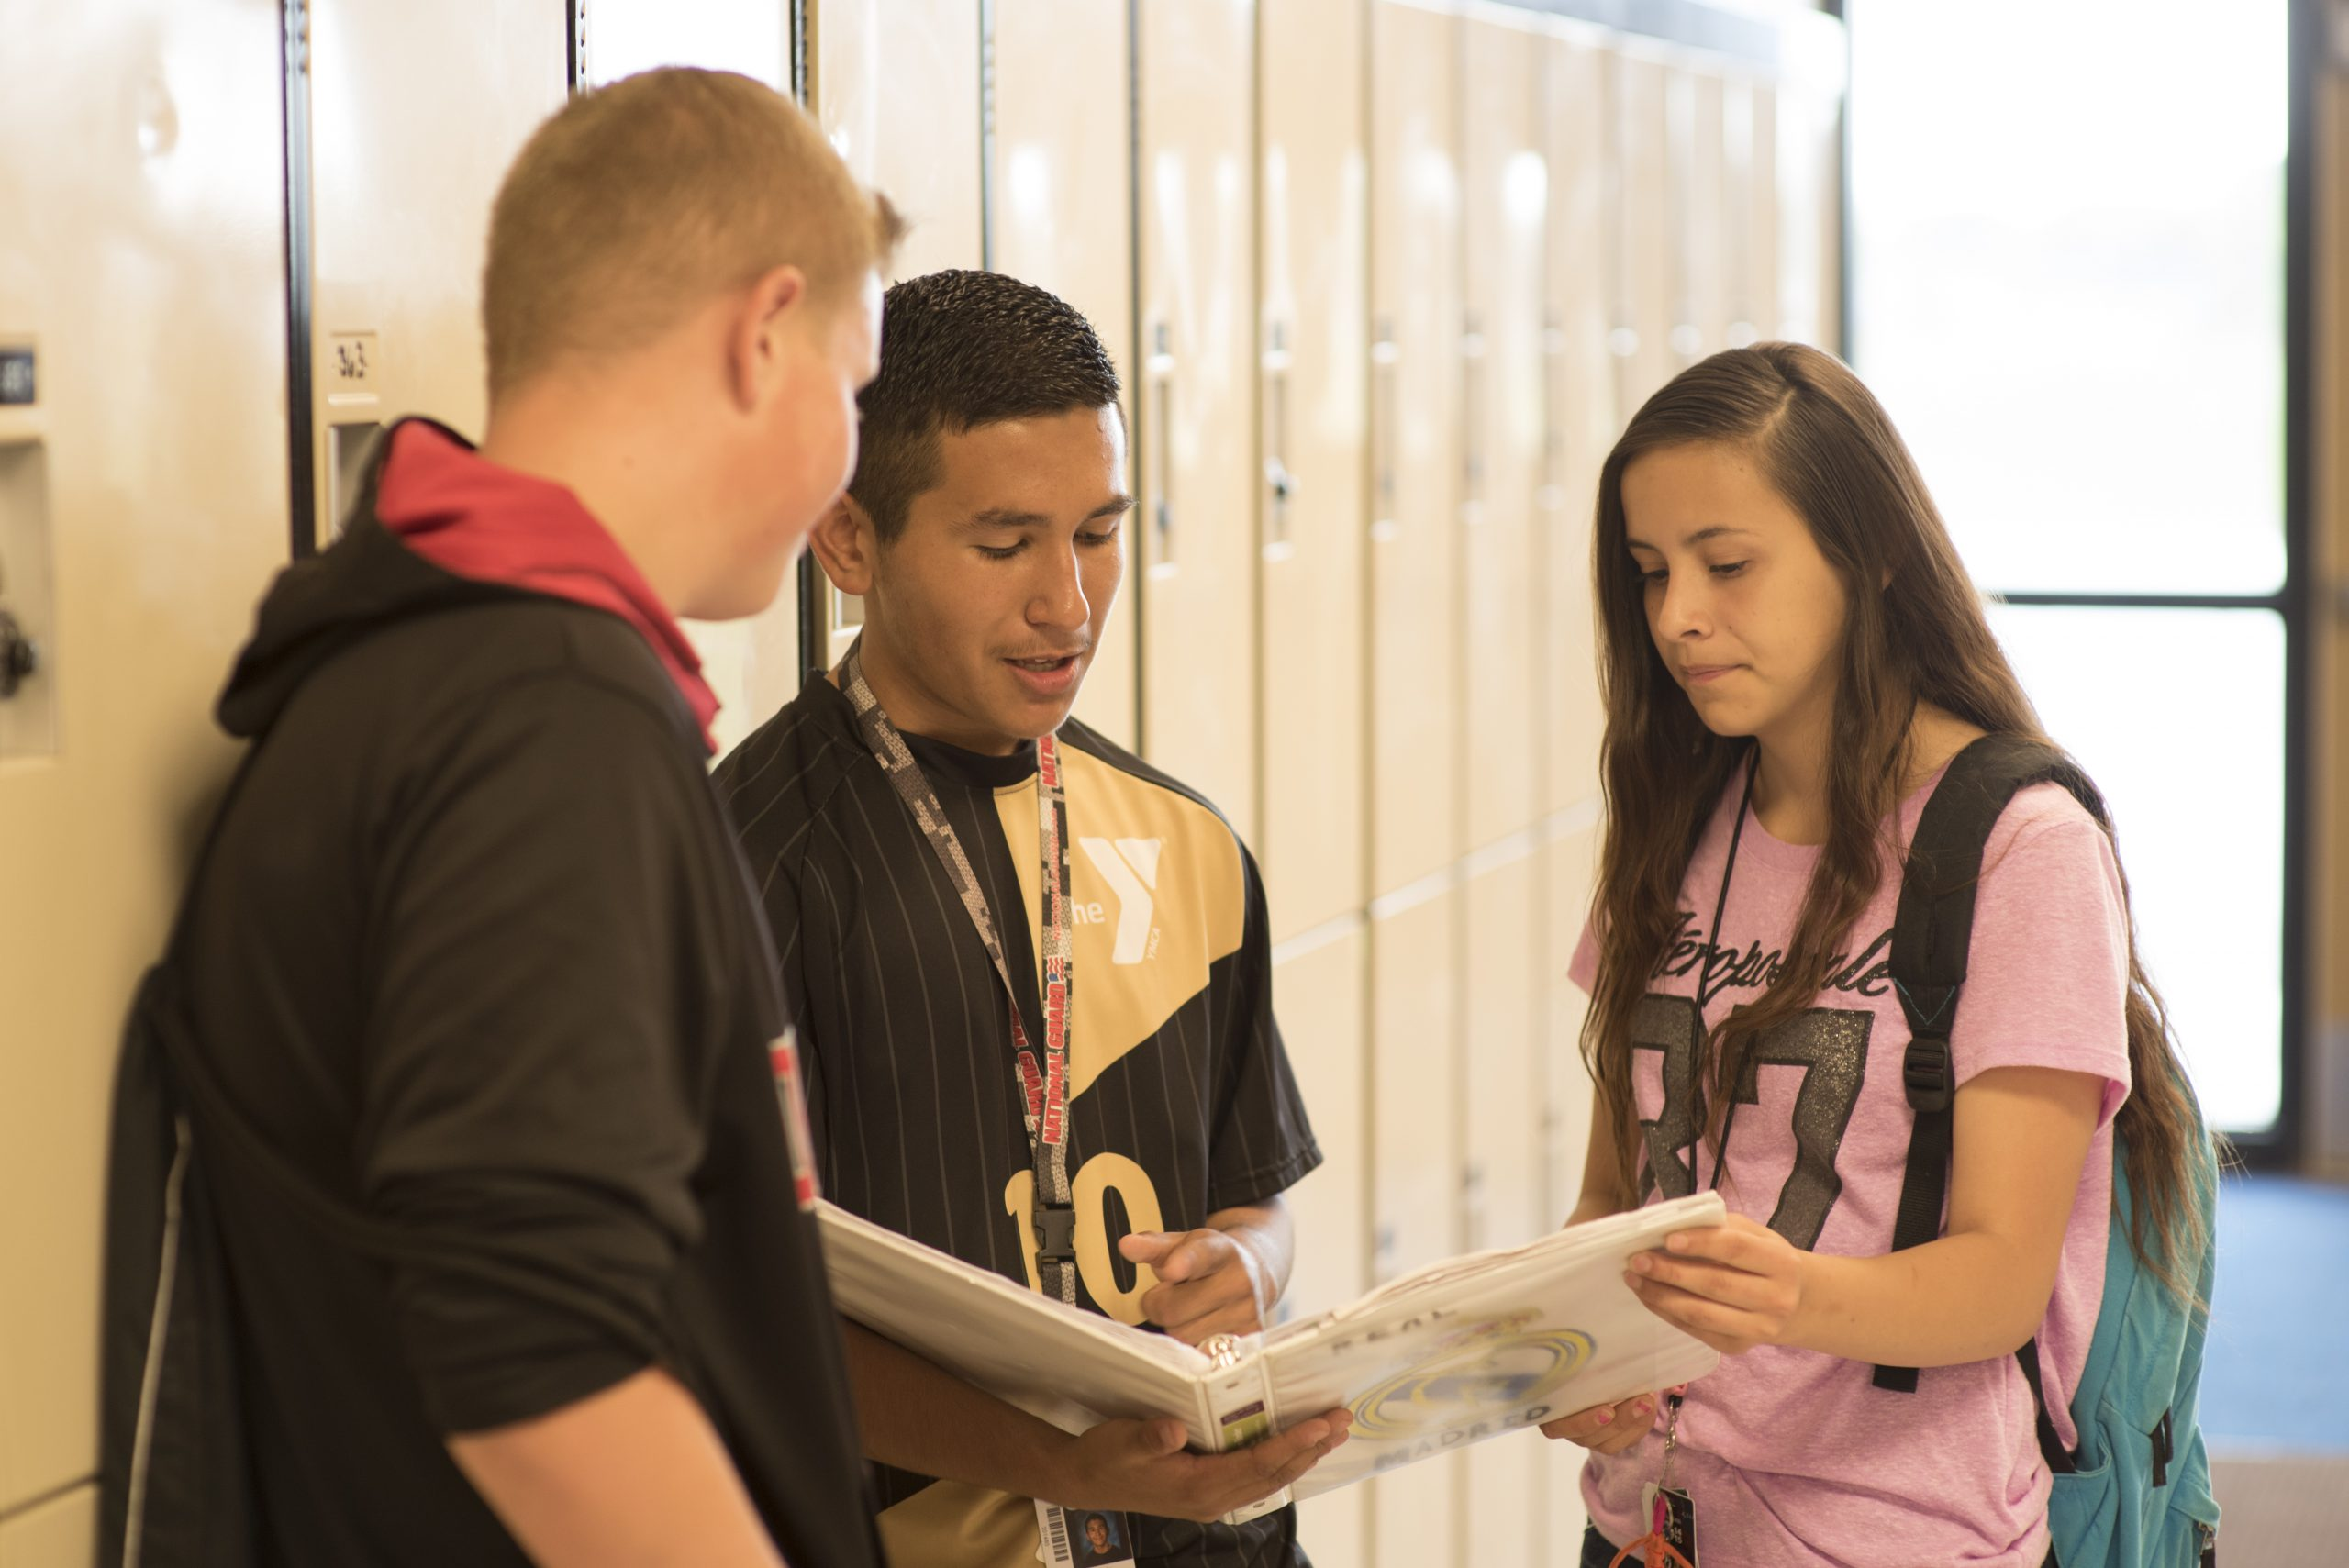 Three students reviewing contents of a binder in a school standing by lockers.